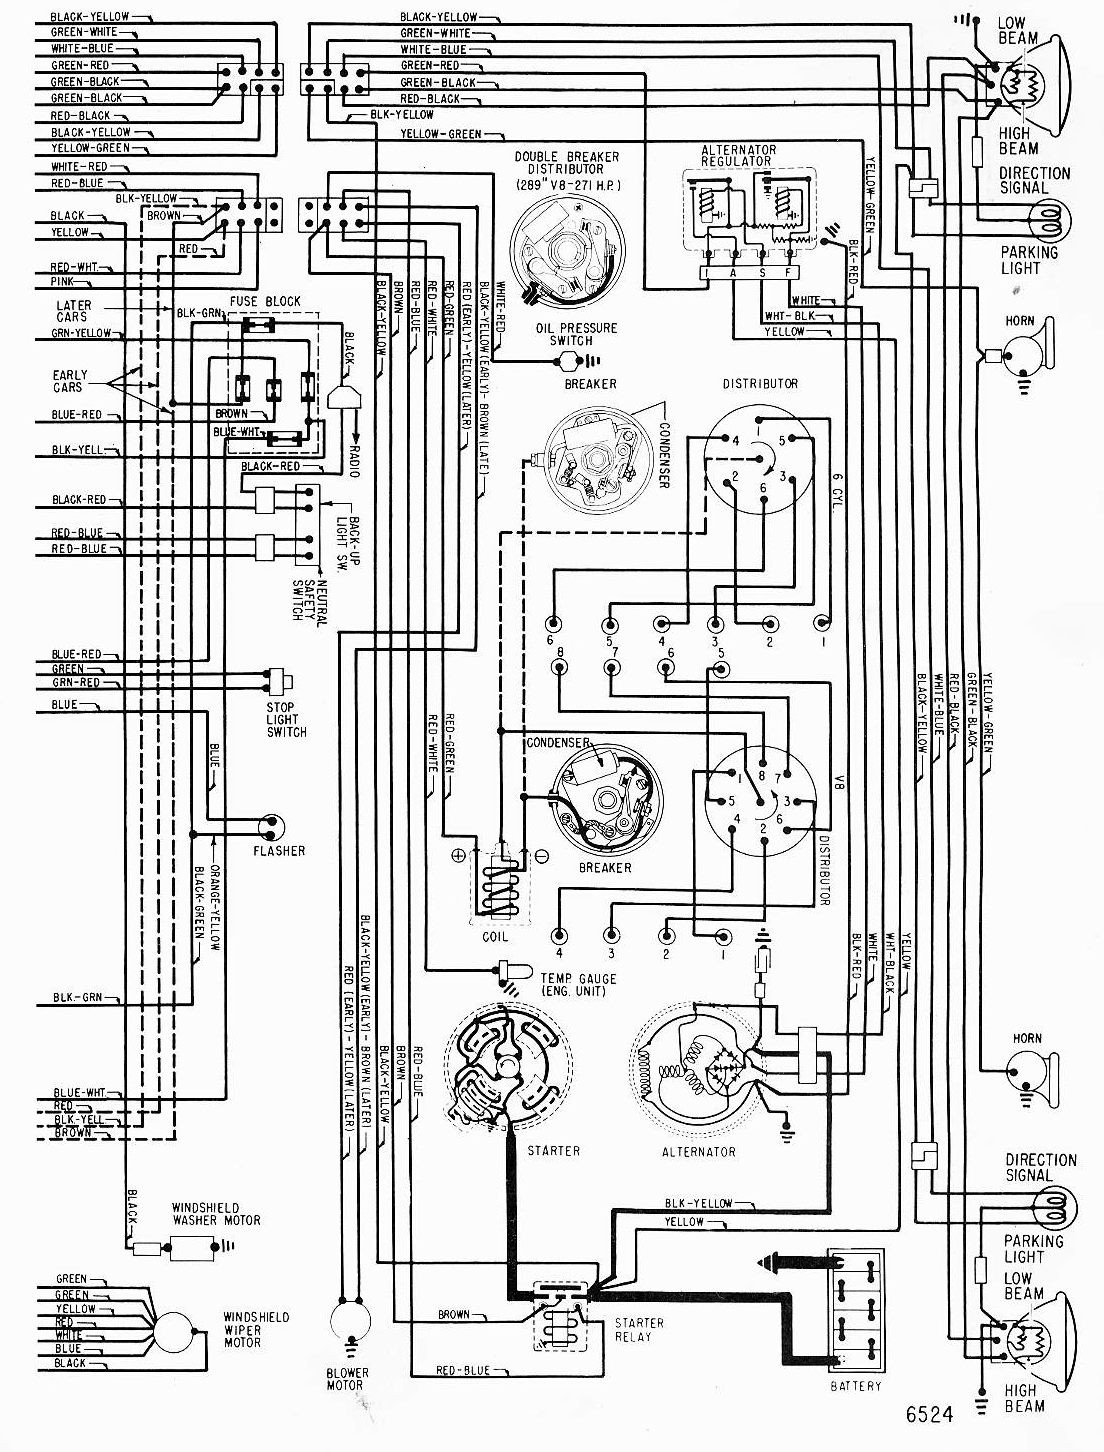 I Am Restoring A 65 Mustang And Need A Wiring Diagram For